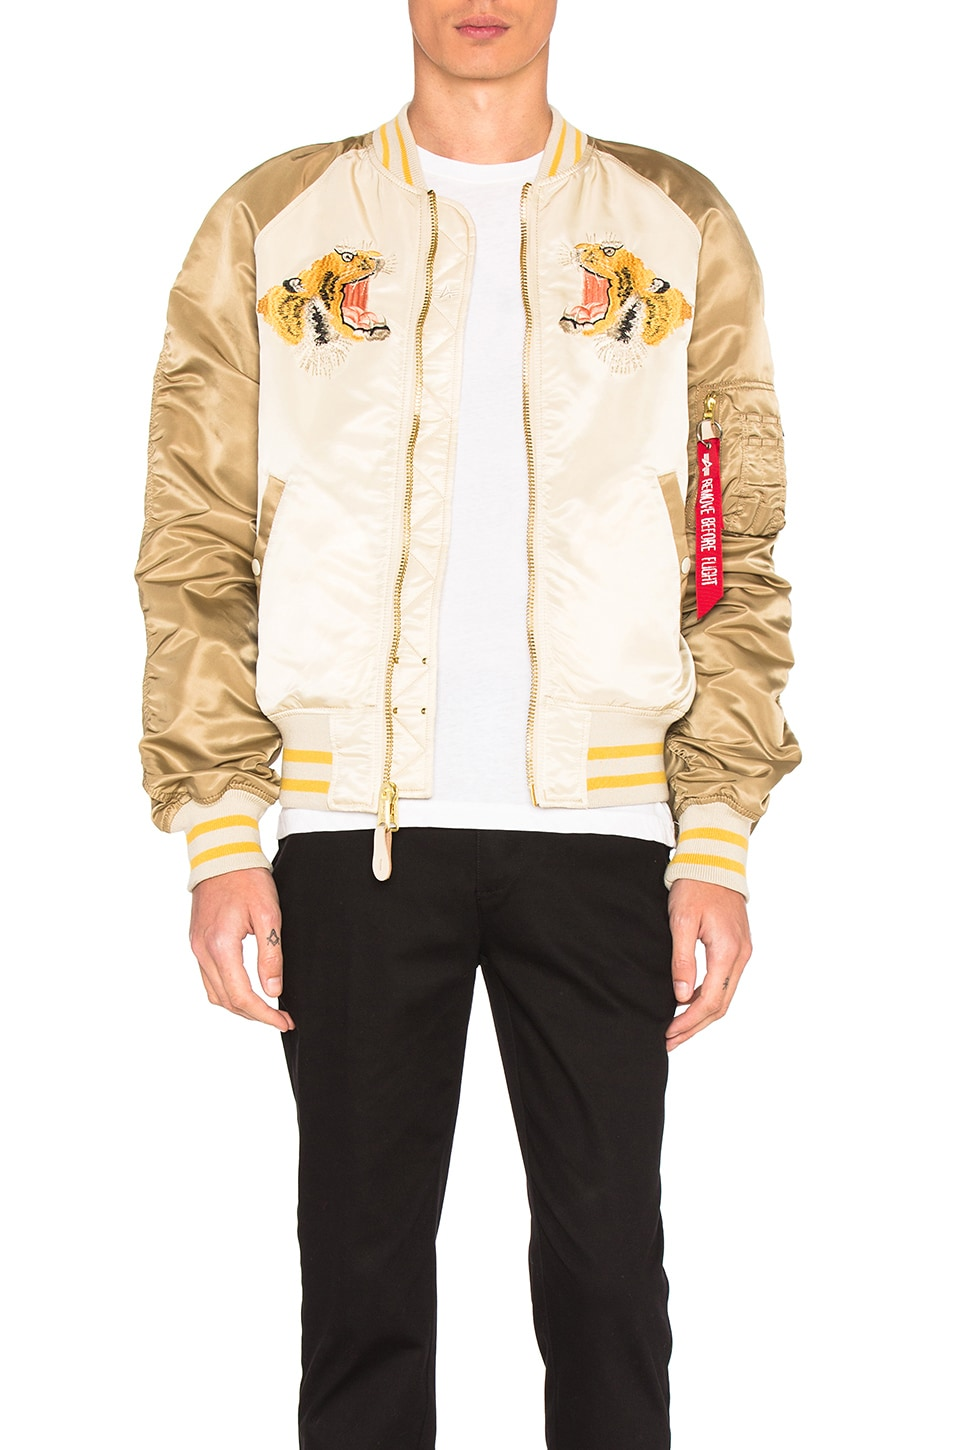 Tiger Souvenir Jacket by ALPHA INDUSTRIES